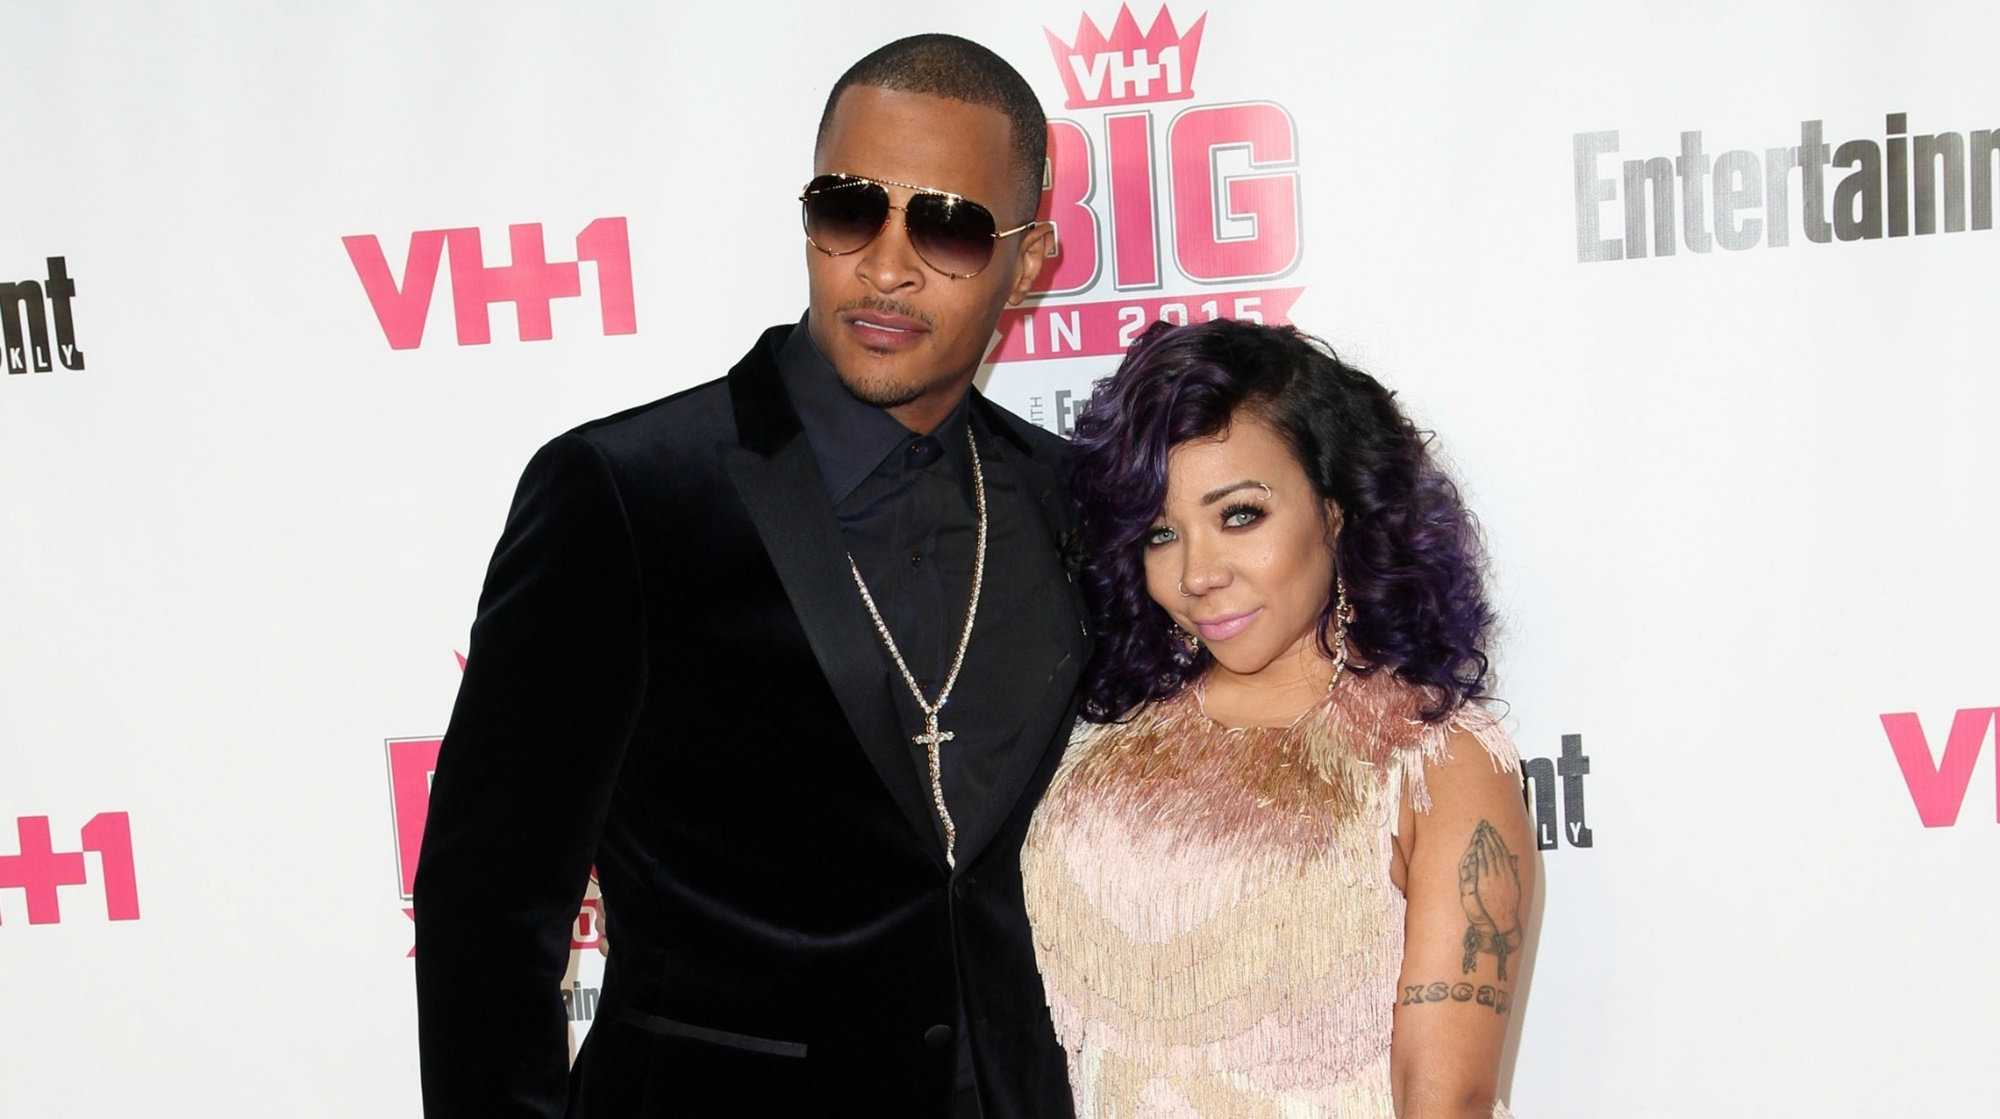 """tiny-harris-cannot-keep-her-hands-off-husband-t-i-power-couple-shows-their-futuristic-fashion-sense-will-deyjah-harris-and-zonnique-pullins-approve-the-style"""